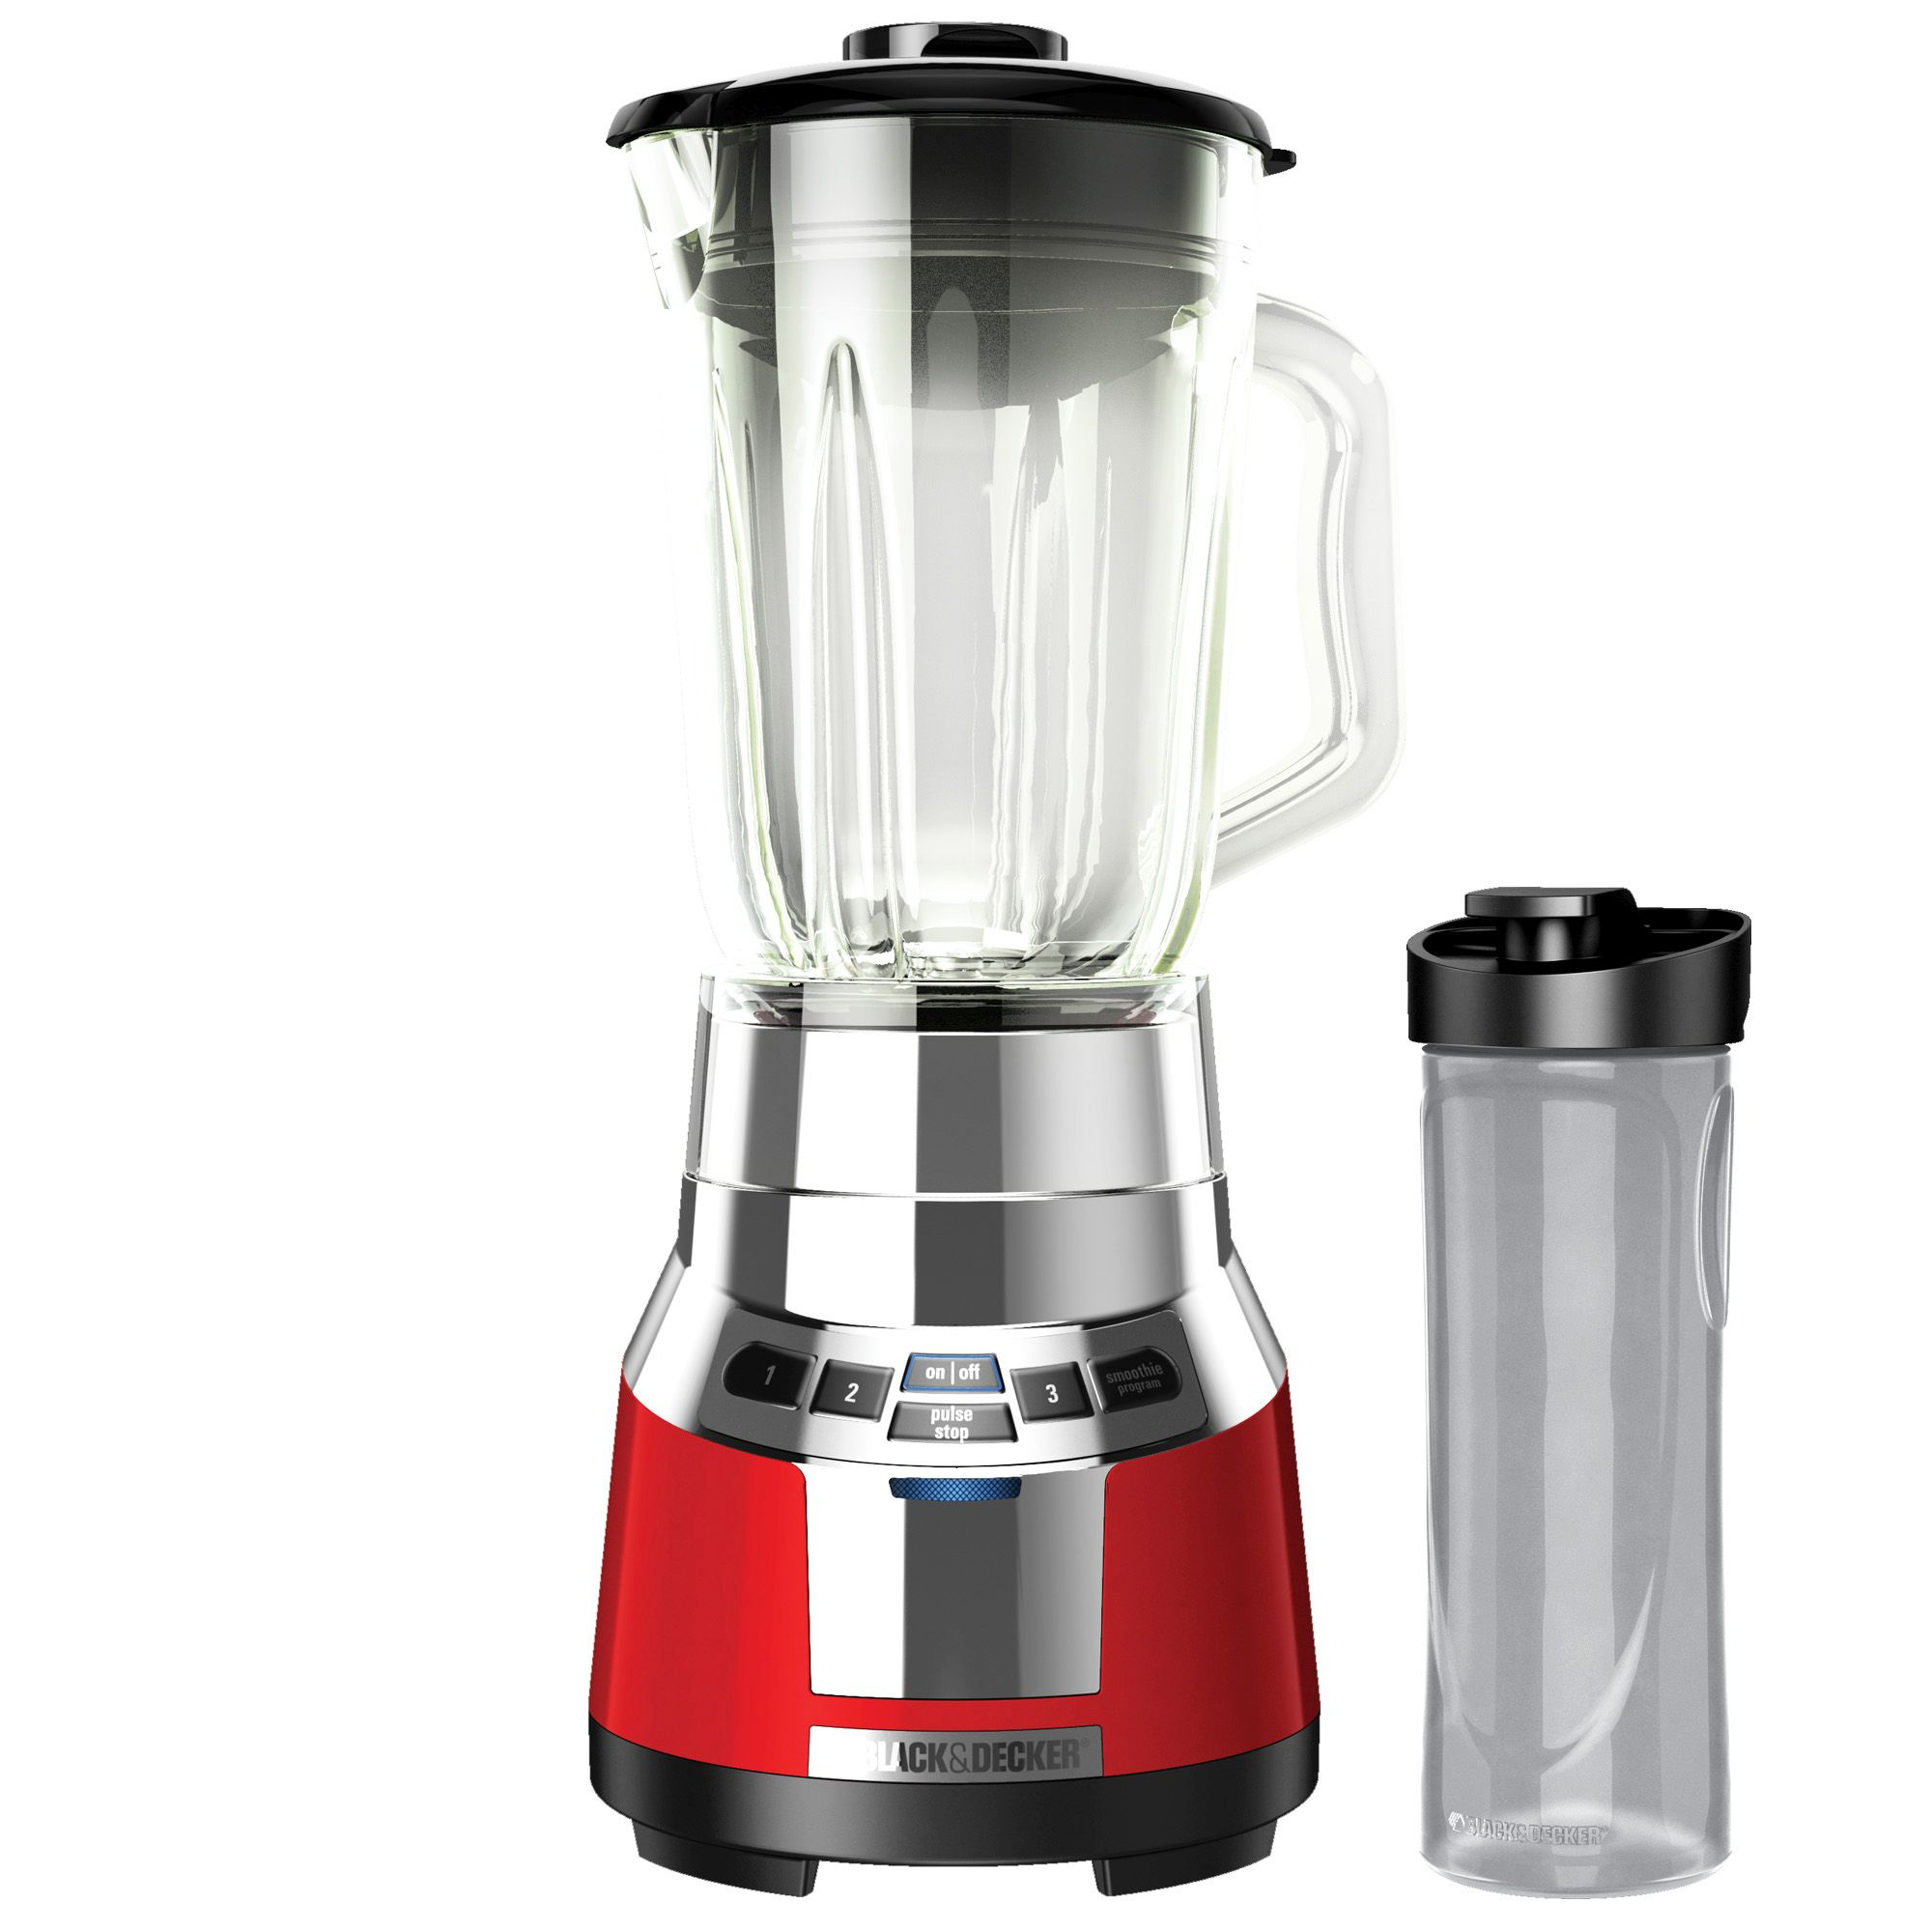 Black & Decker Fusionblade Digital Blender With Personal Smoothie Jar - 700 W - 20 Fl Oz - 4 Speed Setting (s) - 6 Cup - Glass, Stainless Steel - Red, Silver (bl1821rg-p)